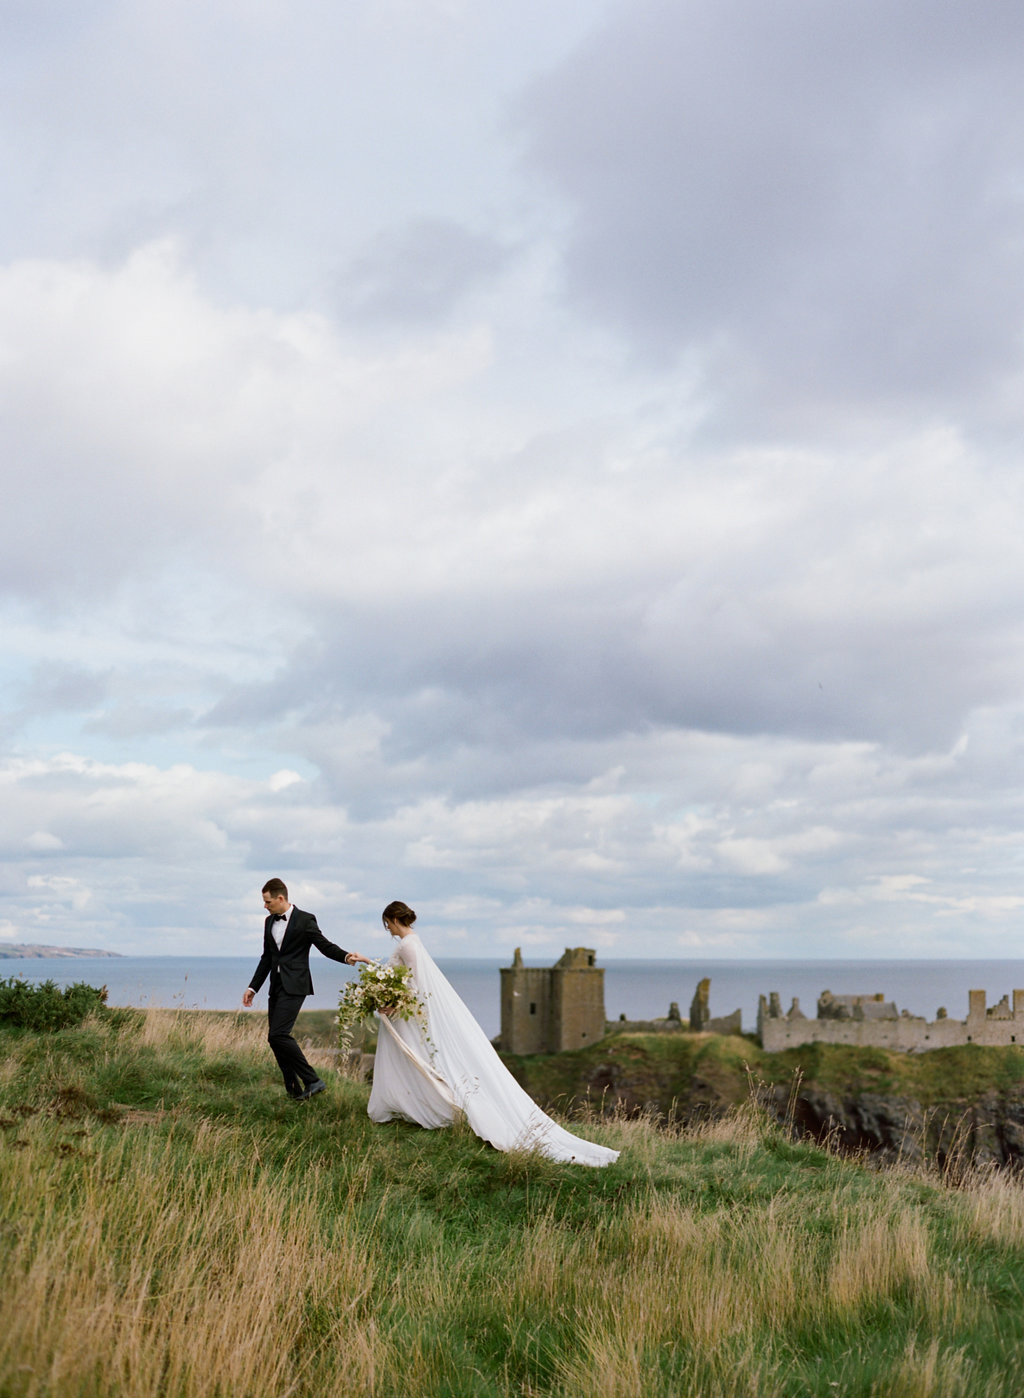 Scotland-Prewedding-highlands-castle-Engagment-Photos-Katie-Grant (112 of 139).jpg